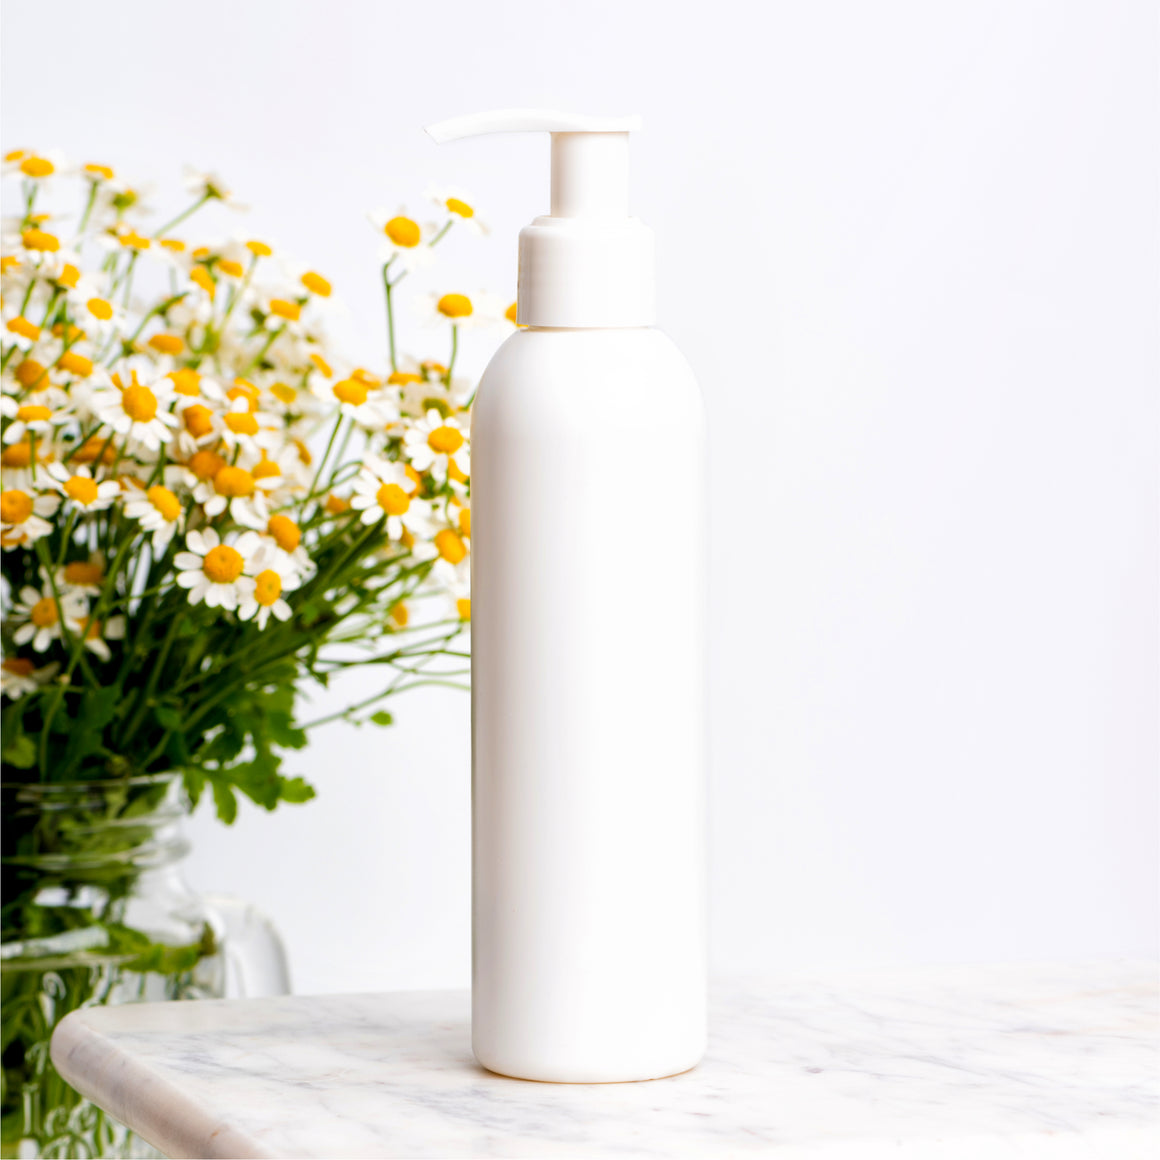 Clean & Clear Daily pH Balancing Shampoo